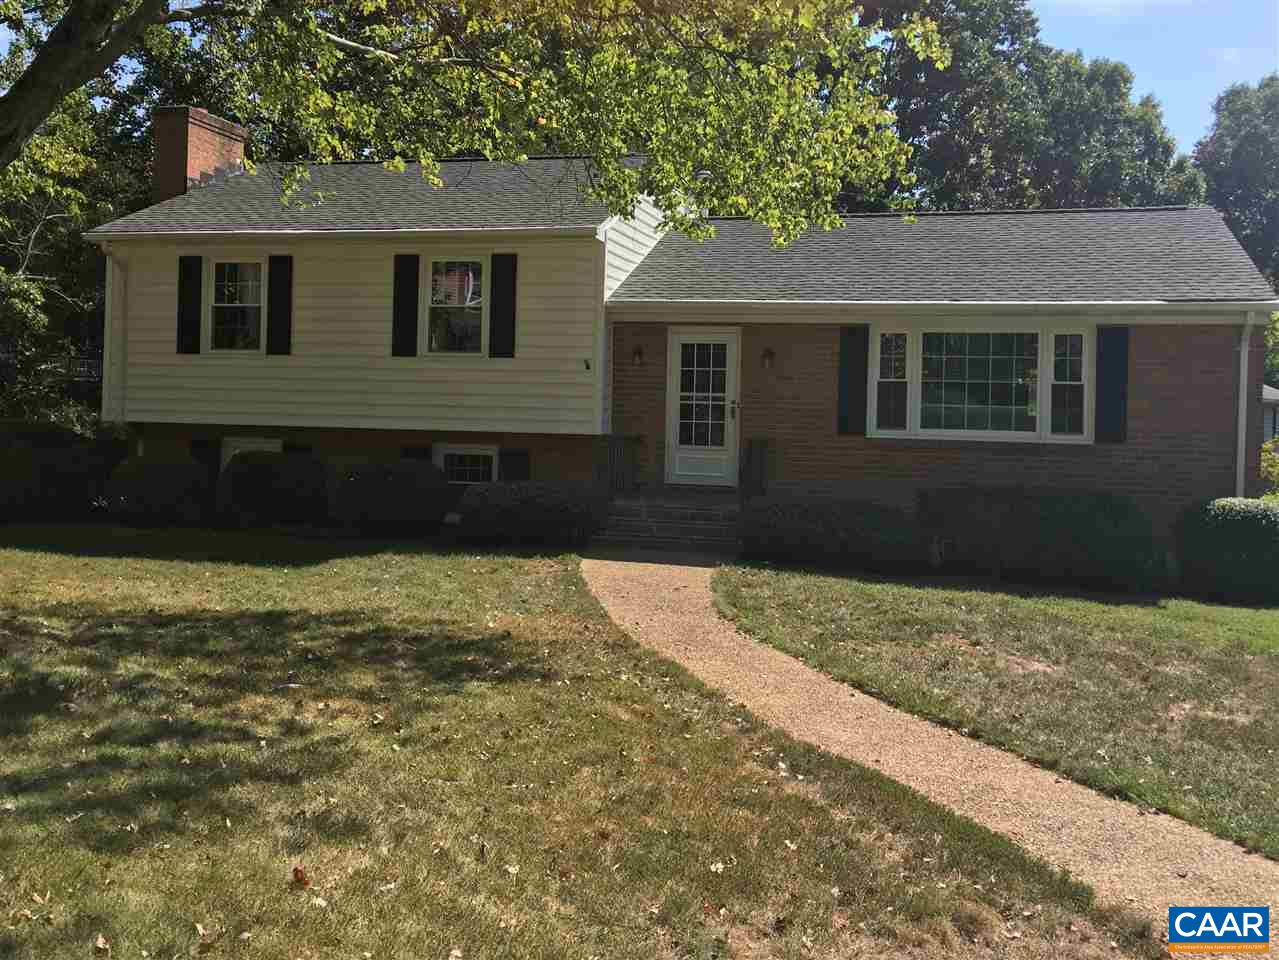 home for sale , MLS #595893, 2250 Brandywine Dr